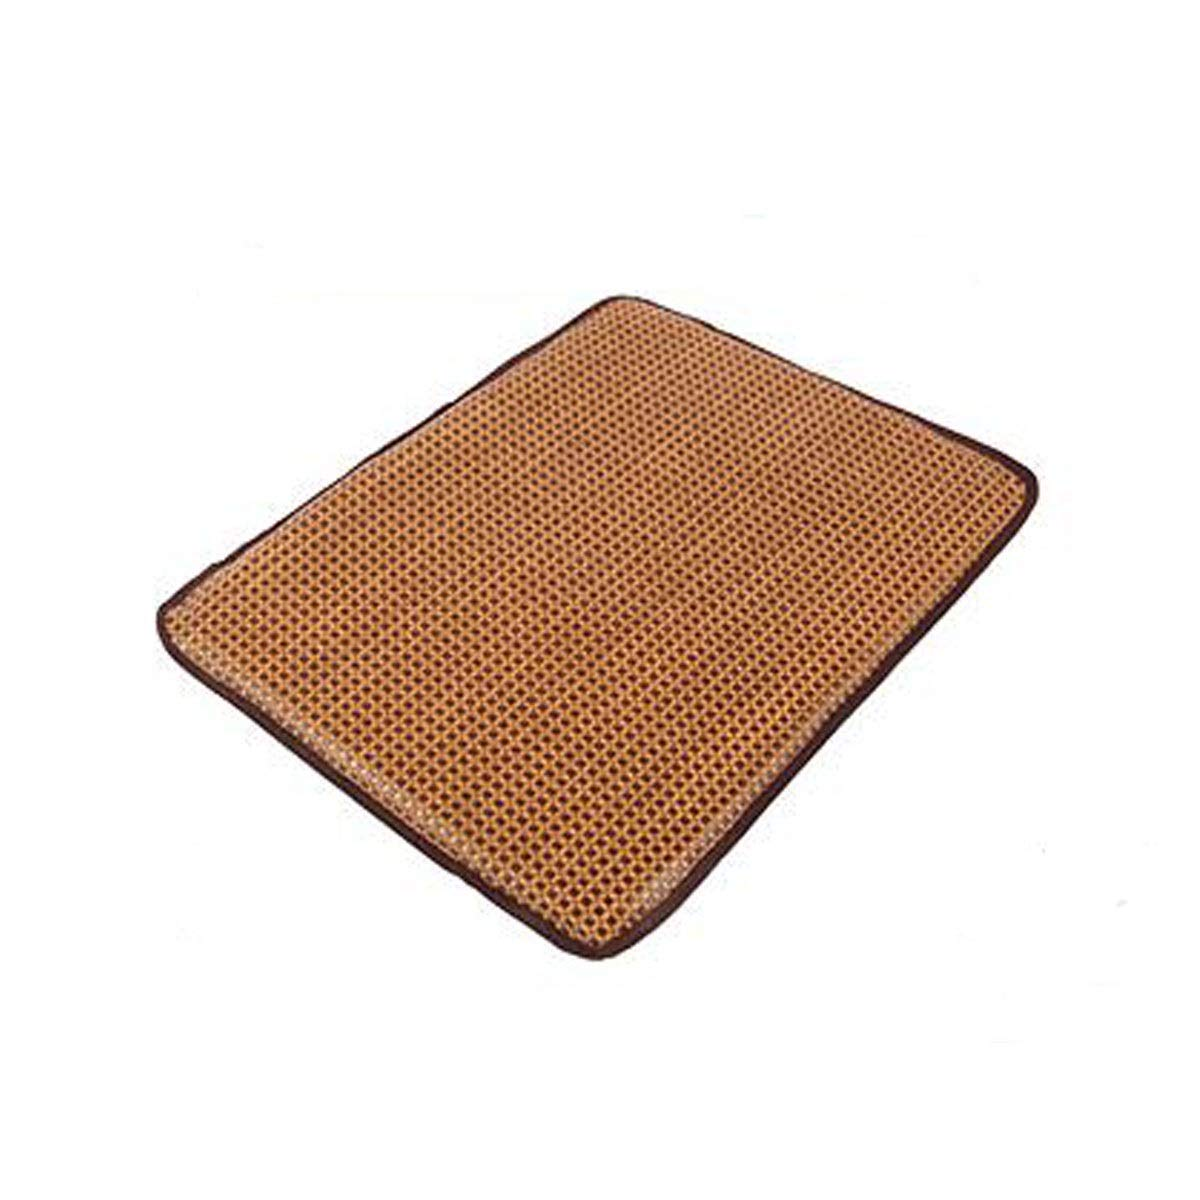 Rattan B S Rattan B S Chenjinxiang01 Dog Cooling Mattress Dog And Cat Bed Summer Cool Pad, Extra Large Non-toxic, Non-sticky, Skin-friendly, Keeps The Pet Sleep Cool And Cushioned (three colors S-XL) delicate